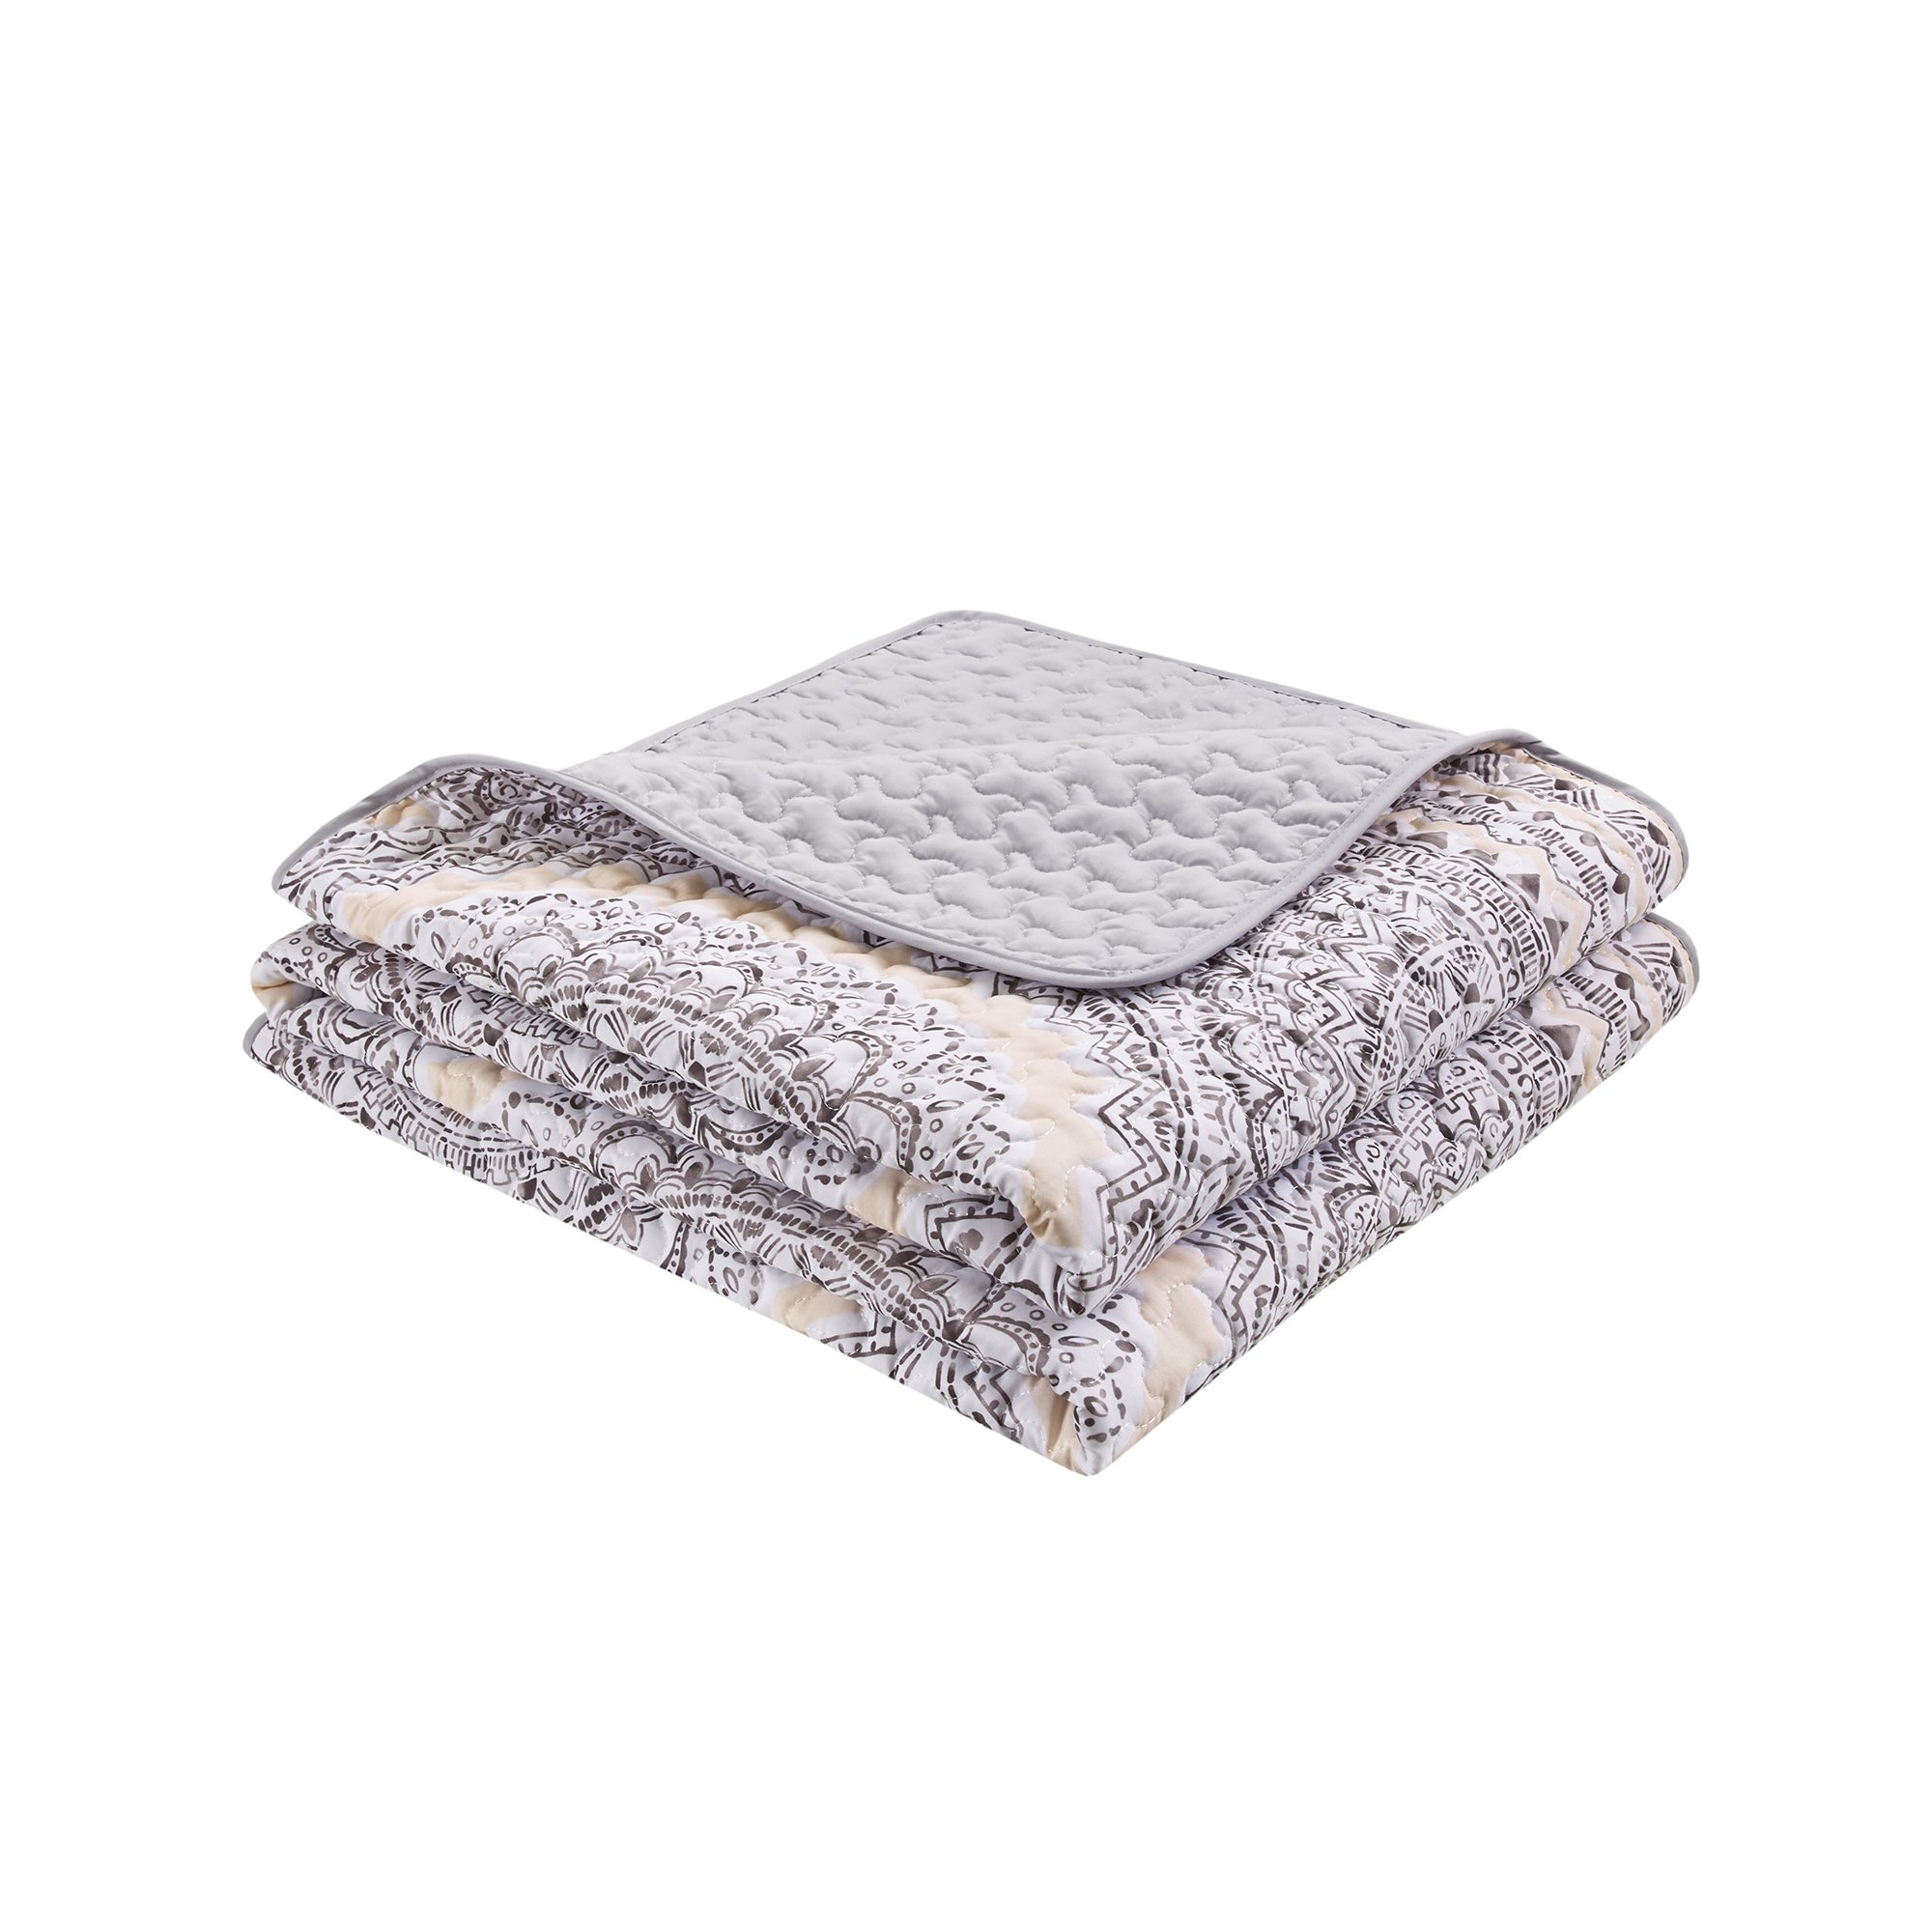 Bedding Sets Twin & Twin Xl - Quilt/Coverlet Set - 2 Pieces - Blush/Pink/Grey - Printed Medallions - Lightweight Twin Size Bedding Sets For Girls - Bedspread Fits Twin & Twin Xl - Adele by Comfort Spaces (Image #7)